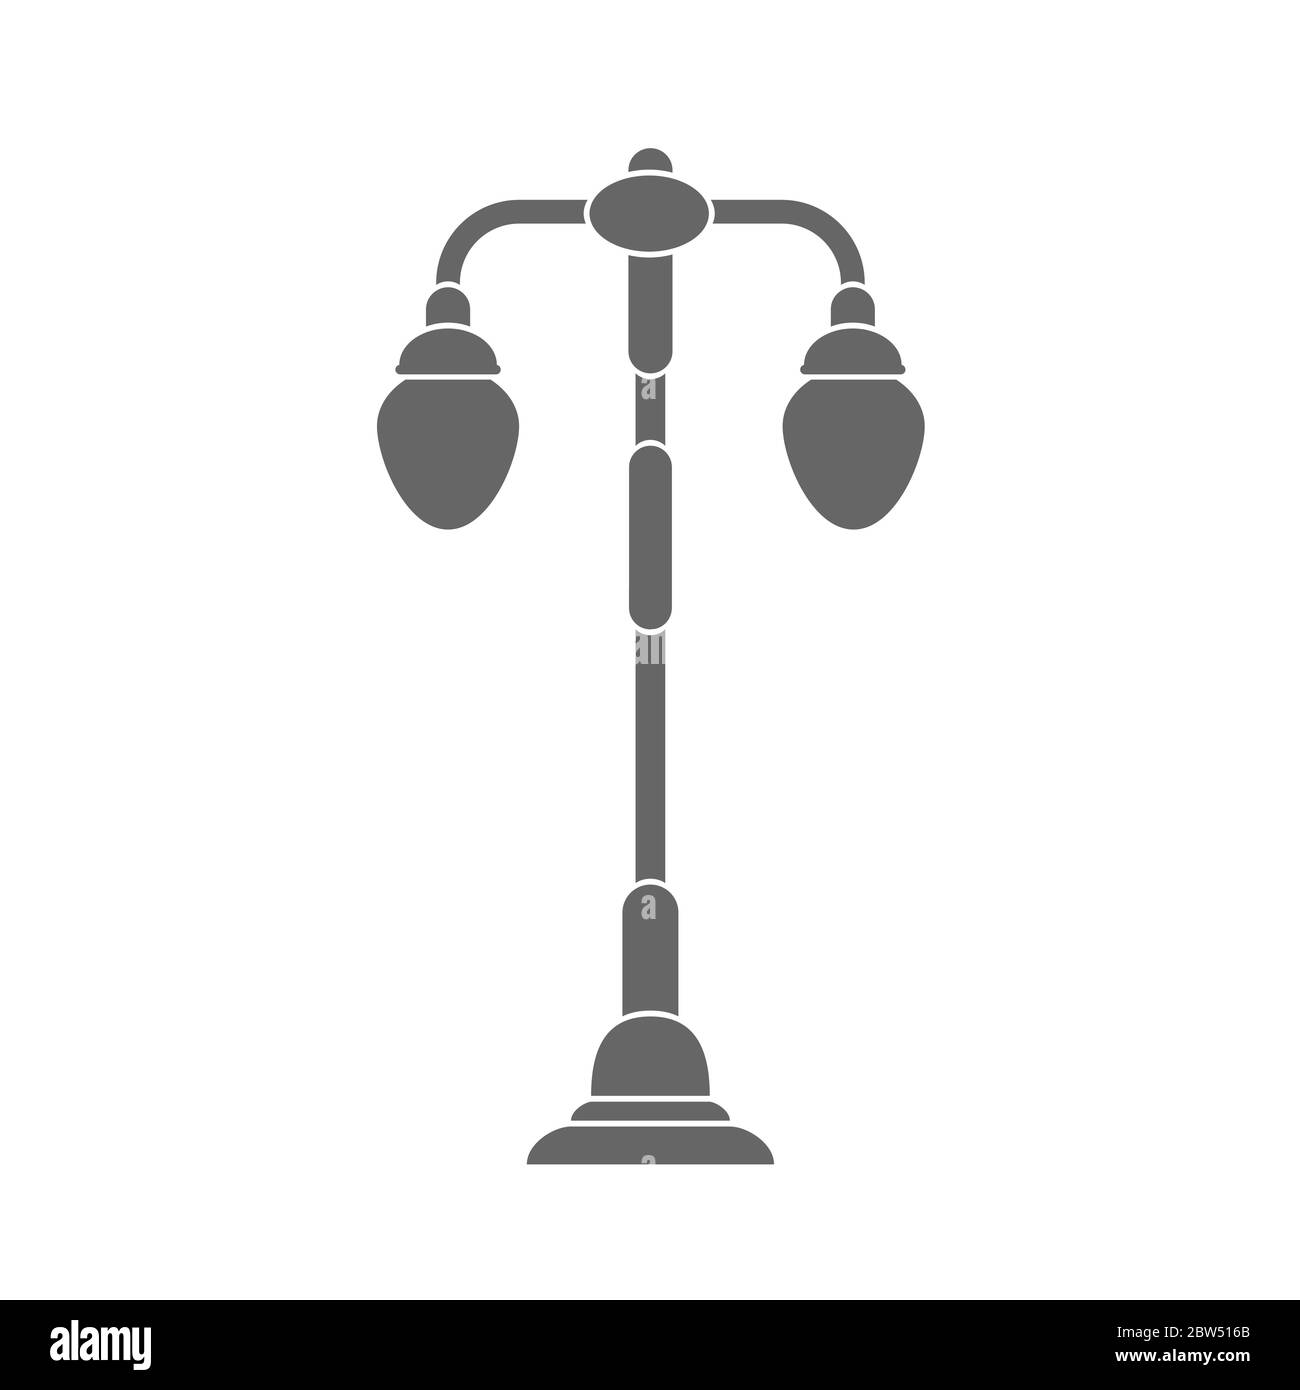 Lighting lamp with two plafonds. Vector illustration for theme design. Isolated on a white background. Simple design. Stock Vector